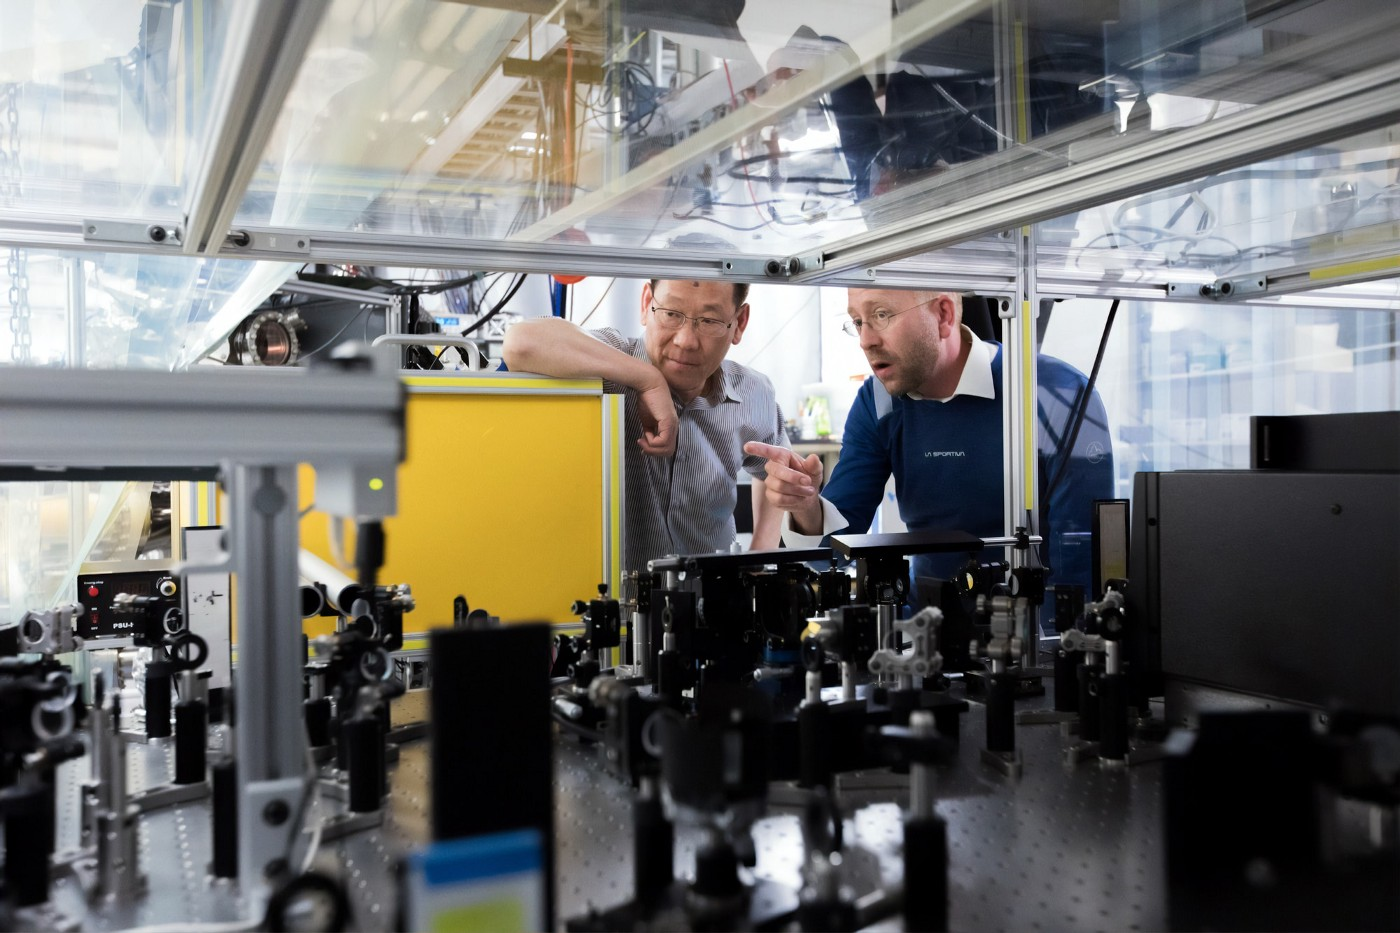 SCIENTISTS MEASURE HOW ELECTRONS MOVE IN SYNC WITH ATOMIC VIBRATIONS AT SLAC.     SLAC/STANFORD PROFESSOR AND SLAC STAFF SCIENTIST WITH THE ARPES INSTRUMENT USED TO MEASURE ELECTRON ENERGY AND MOMENTUM IN AN IRON SELENIDE FILM.